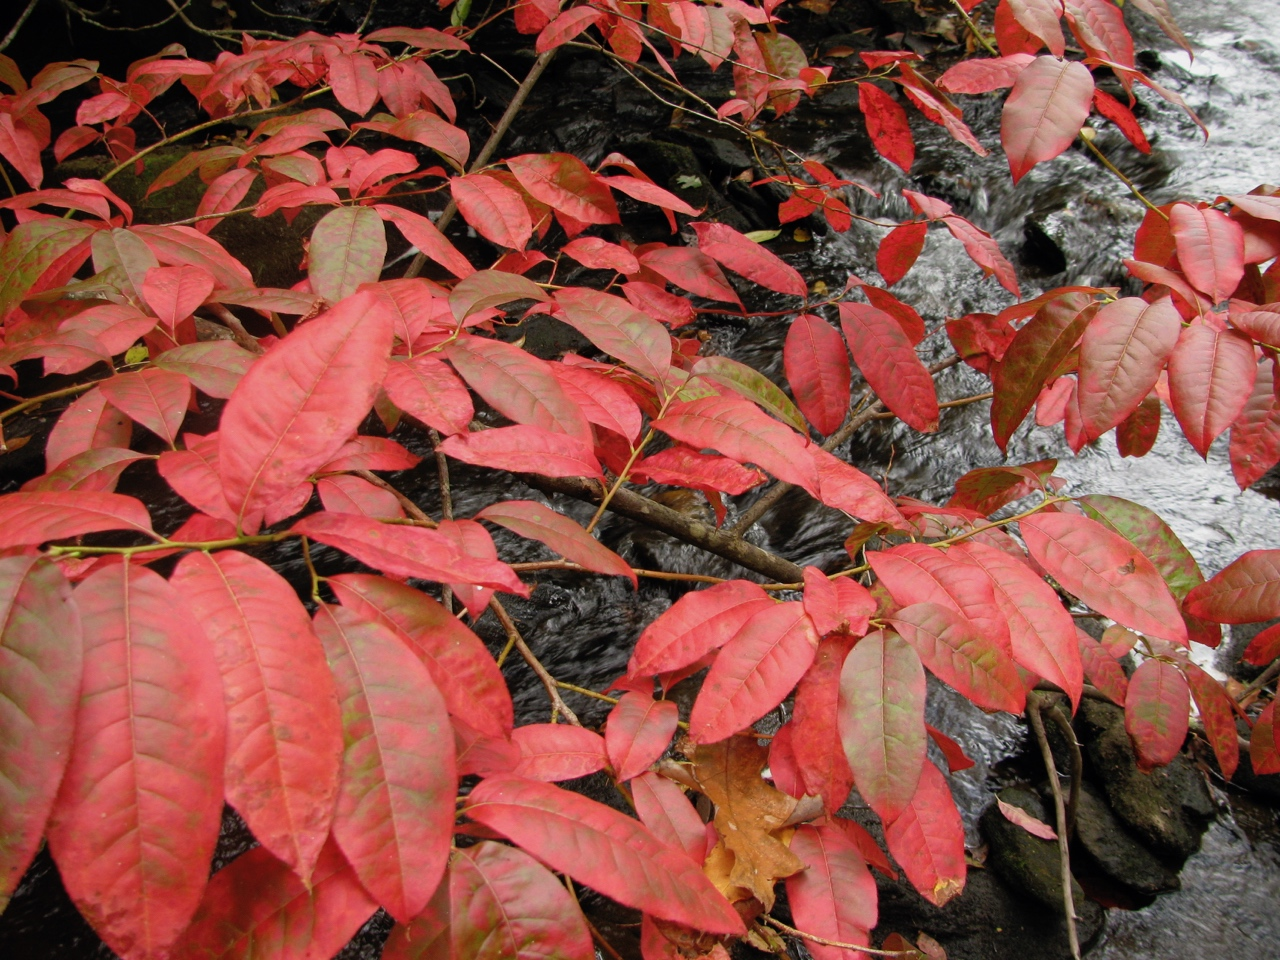 The Scientific Name is Oxydendrum arboreum. You will likely hear them called Sourwood, Sorrel-tree. This picture shows the Close-up of leaves in October of Oxydendrum arboreum